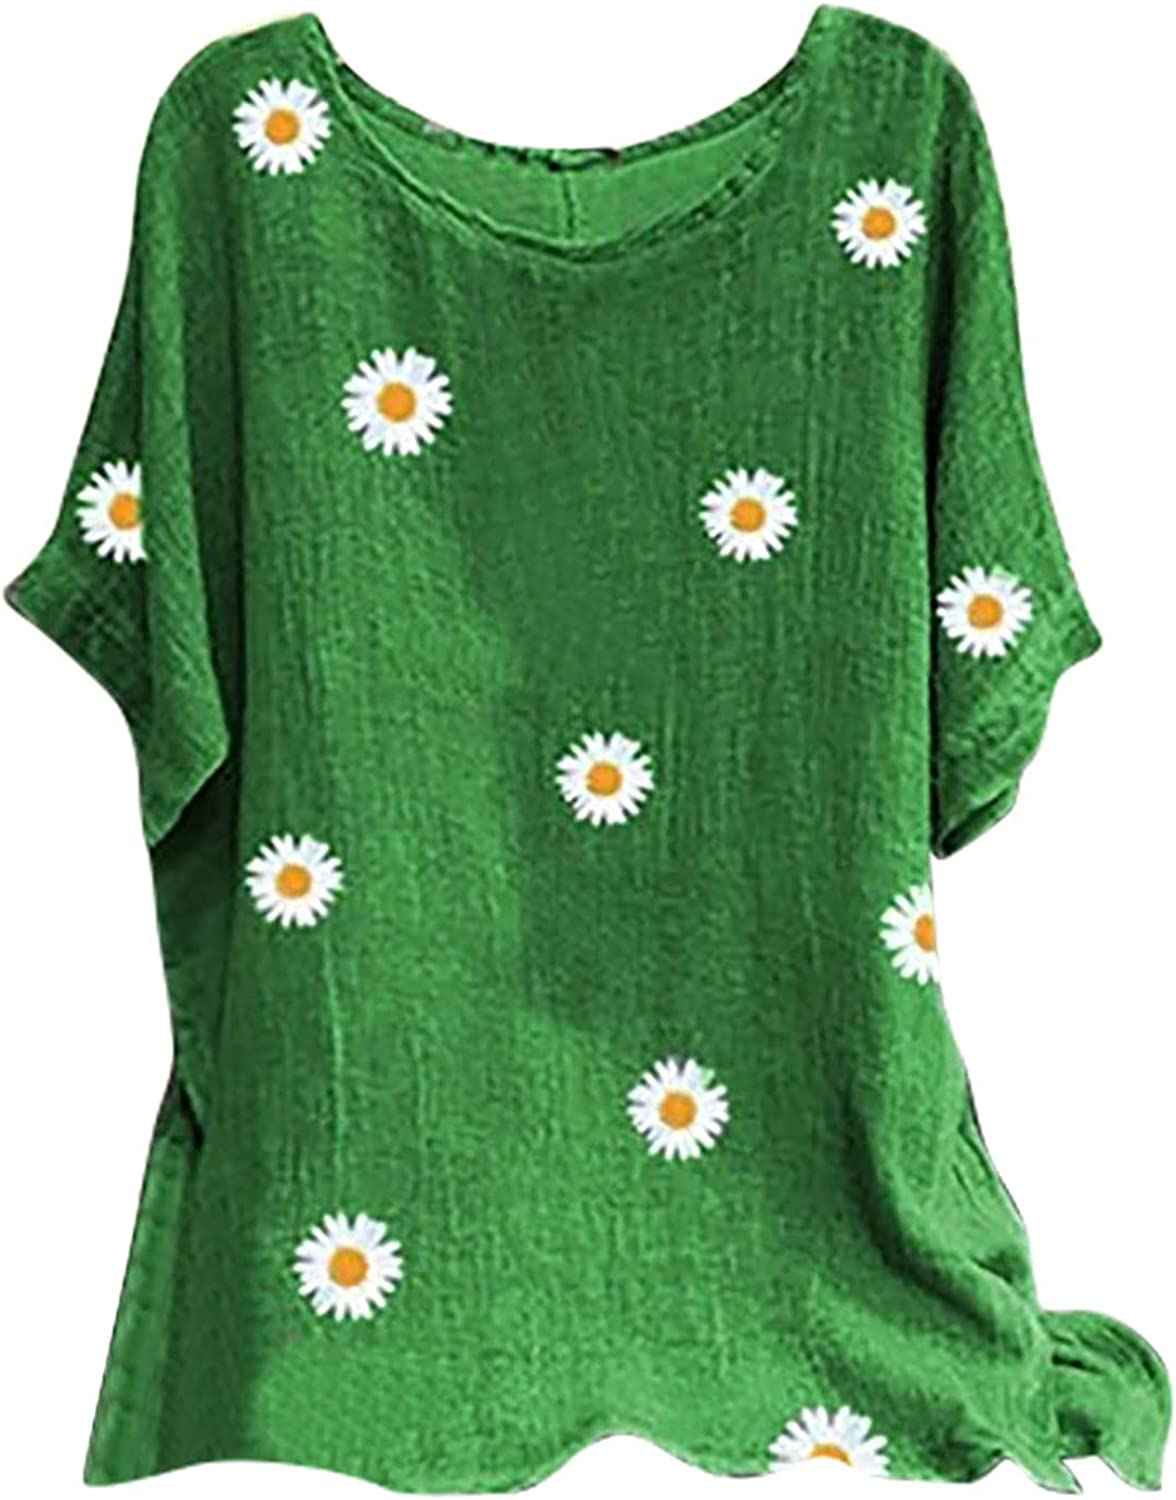 Womens Summer Tops Plus Size Cotton Linen Shirts Casual Crewneck Long Flowy Blouses Cute Daisy Breathable Graphic Tees